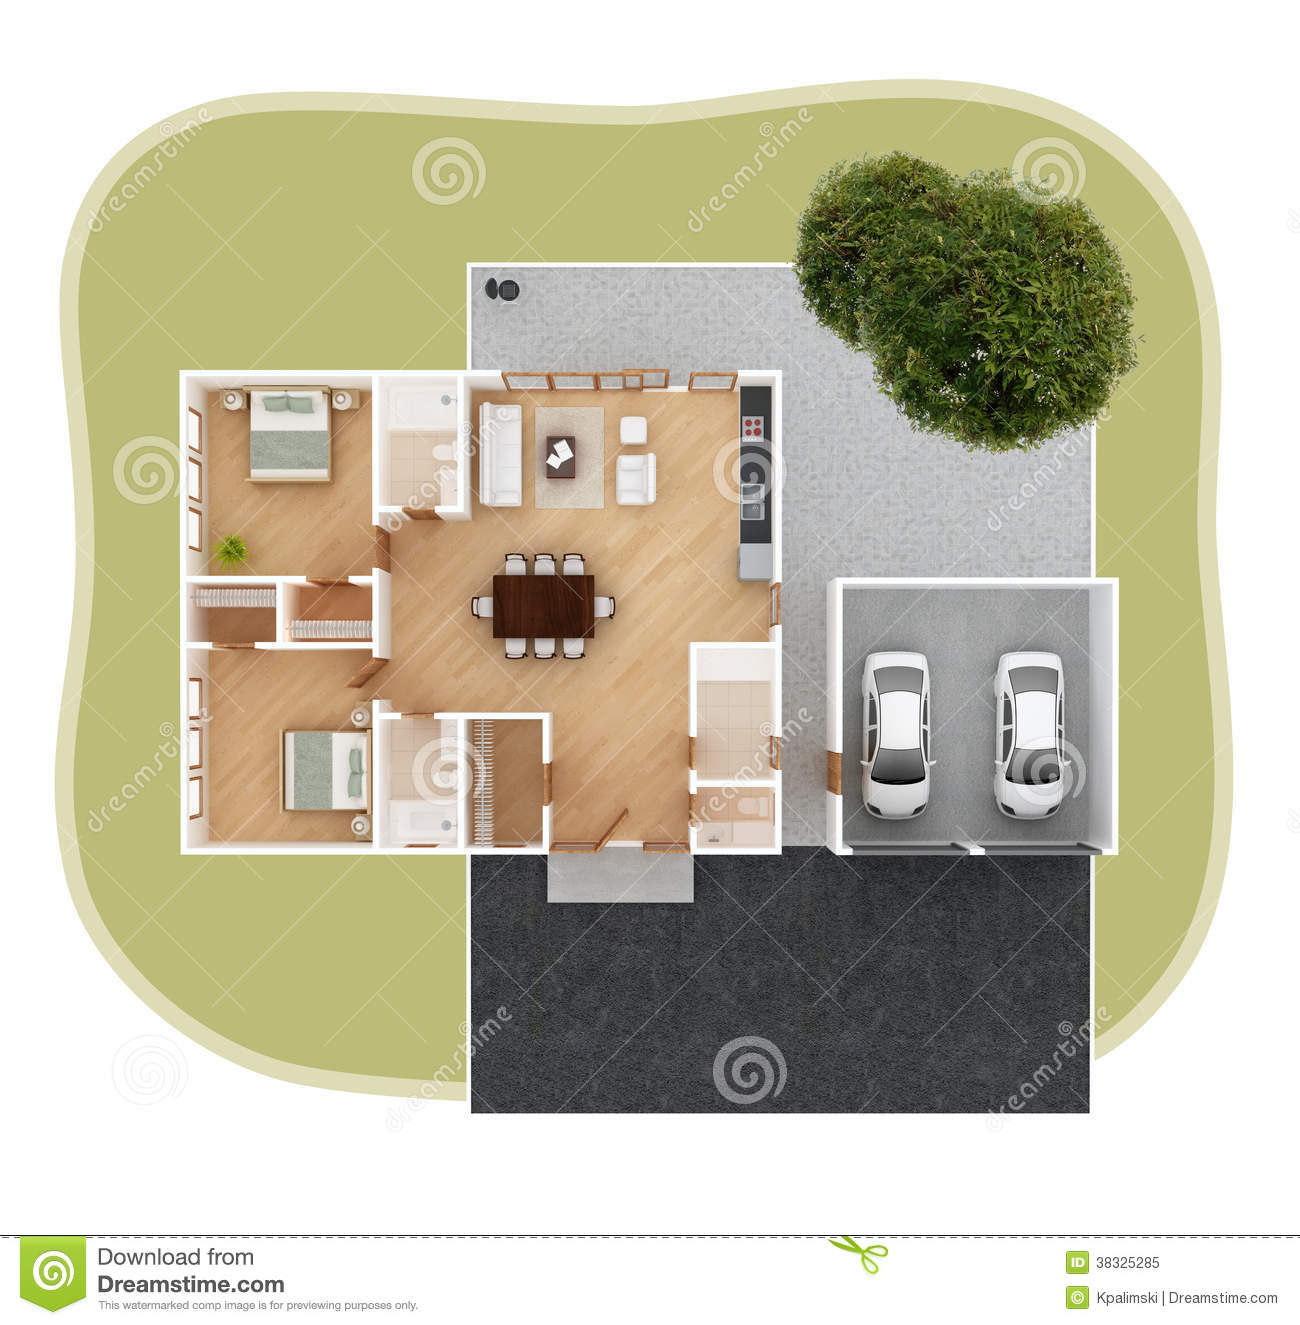 Https Www Dreamstime Com Royalty Free Stock Photo House Plan Top View Interior Cross Section Image38325285